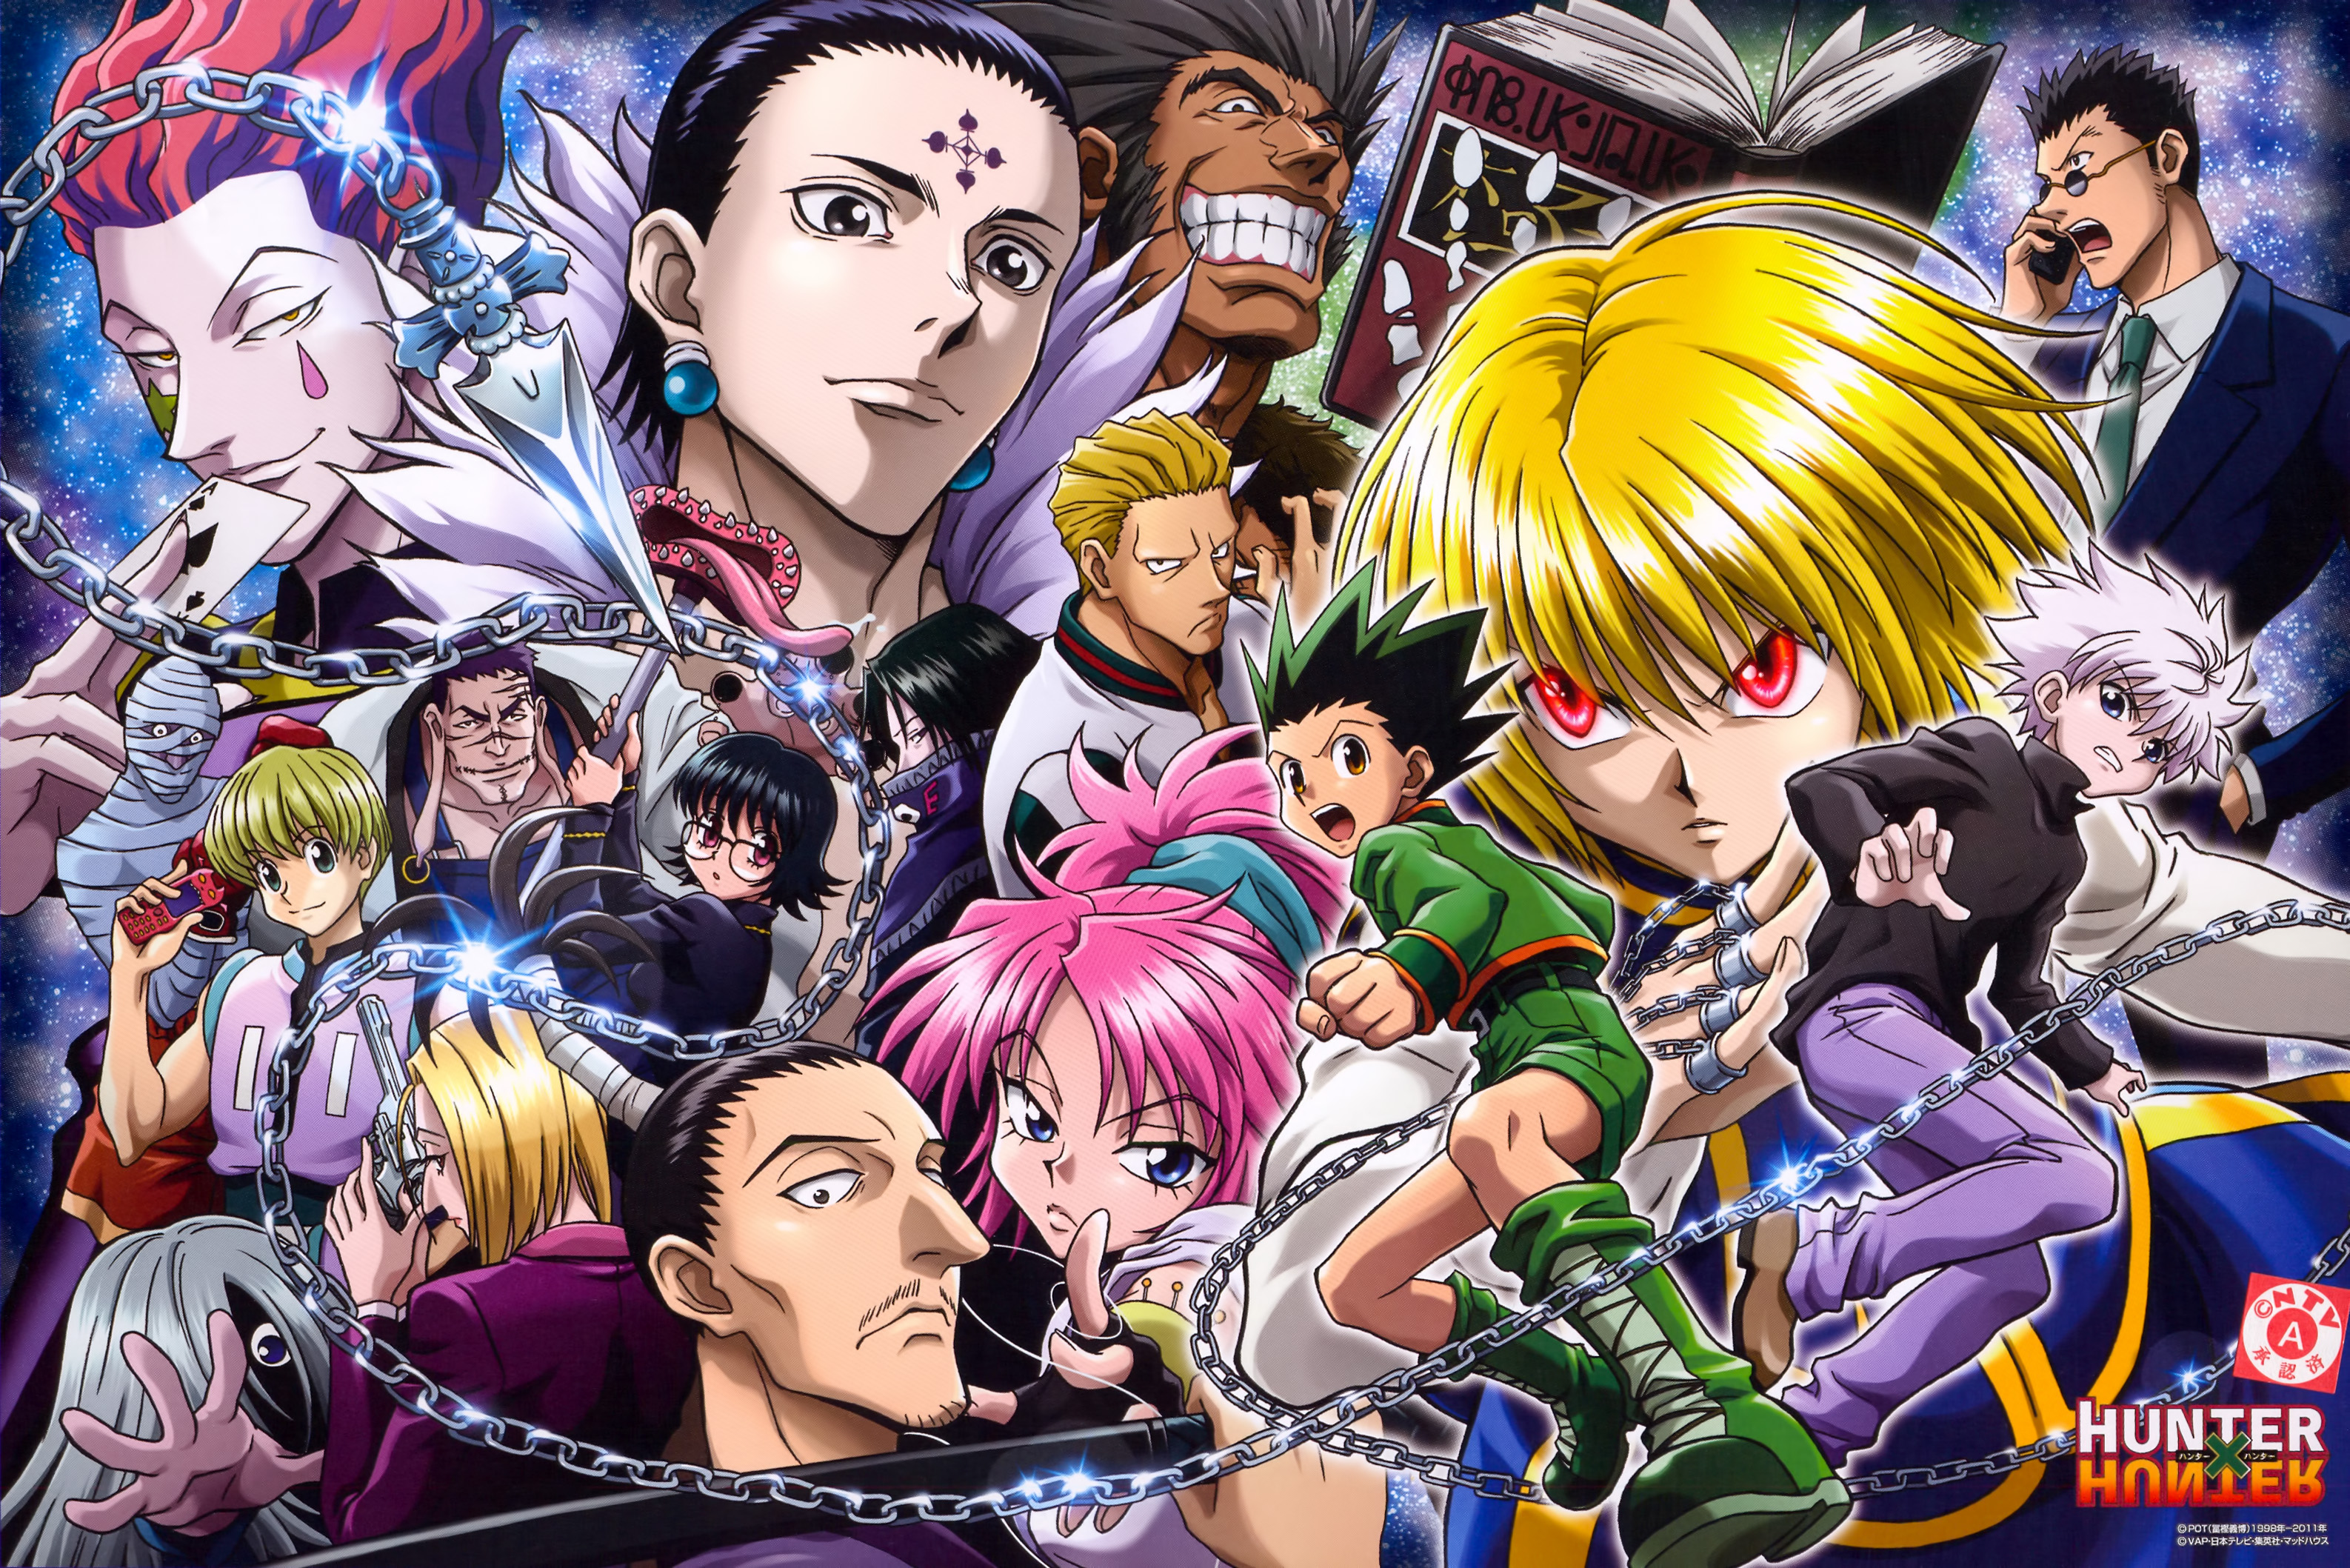 a review of hunter x hunter Hunter x hunter review name:hunter x hunter ( 2011 ) writer:togashi yoshihiro episodes:1-ongoing runtime:2011-present genreaction: adventure, fantasy critic 's descriptiontogashi yoshihiro is a good known mangaka responsible for yu yu hakusho, one of the best zanzibar copal of the mid 90-s frequently compared to dragon ball z.